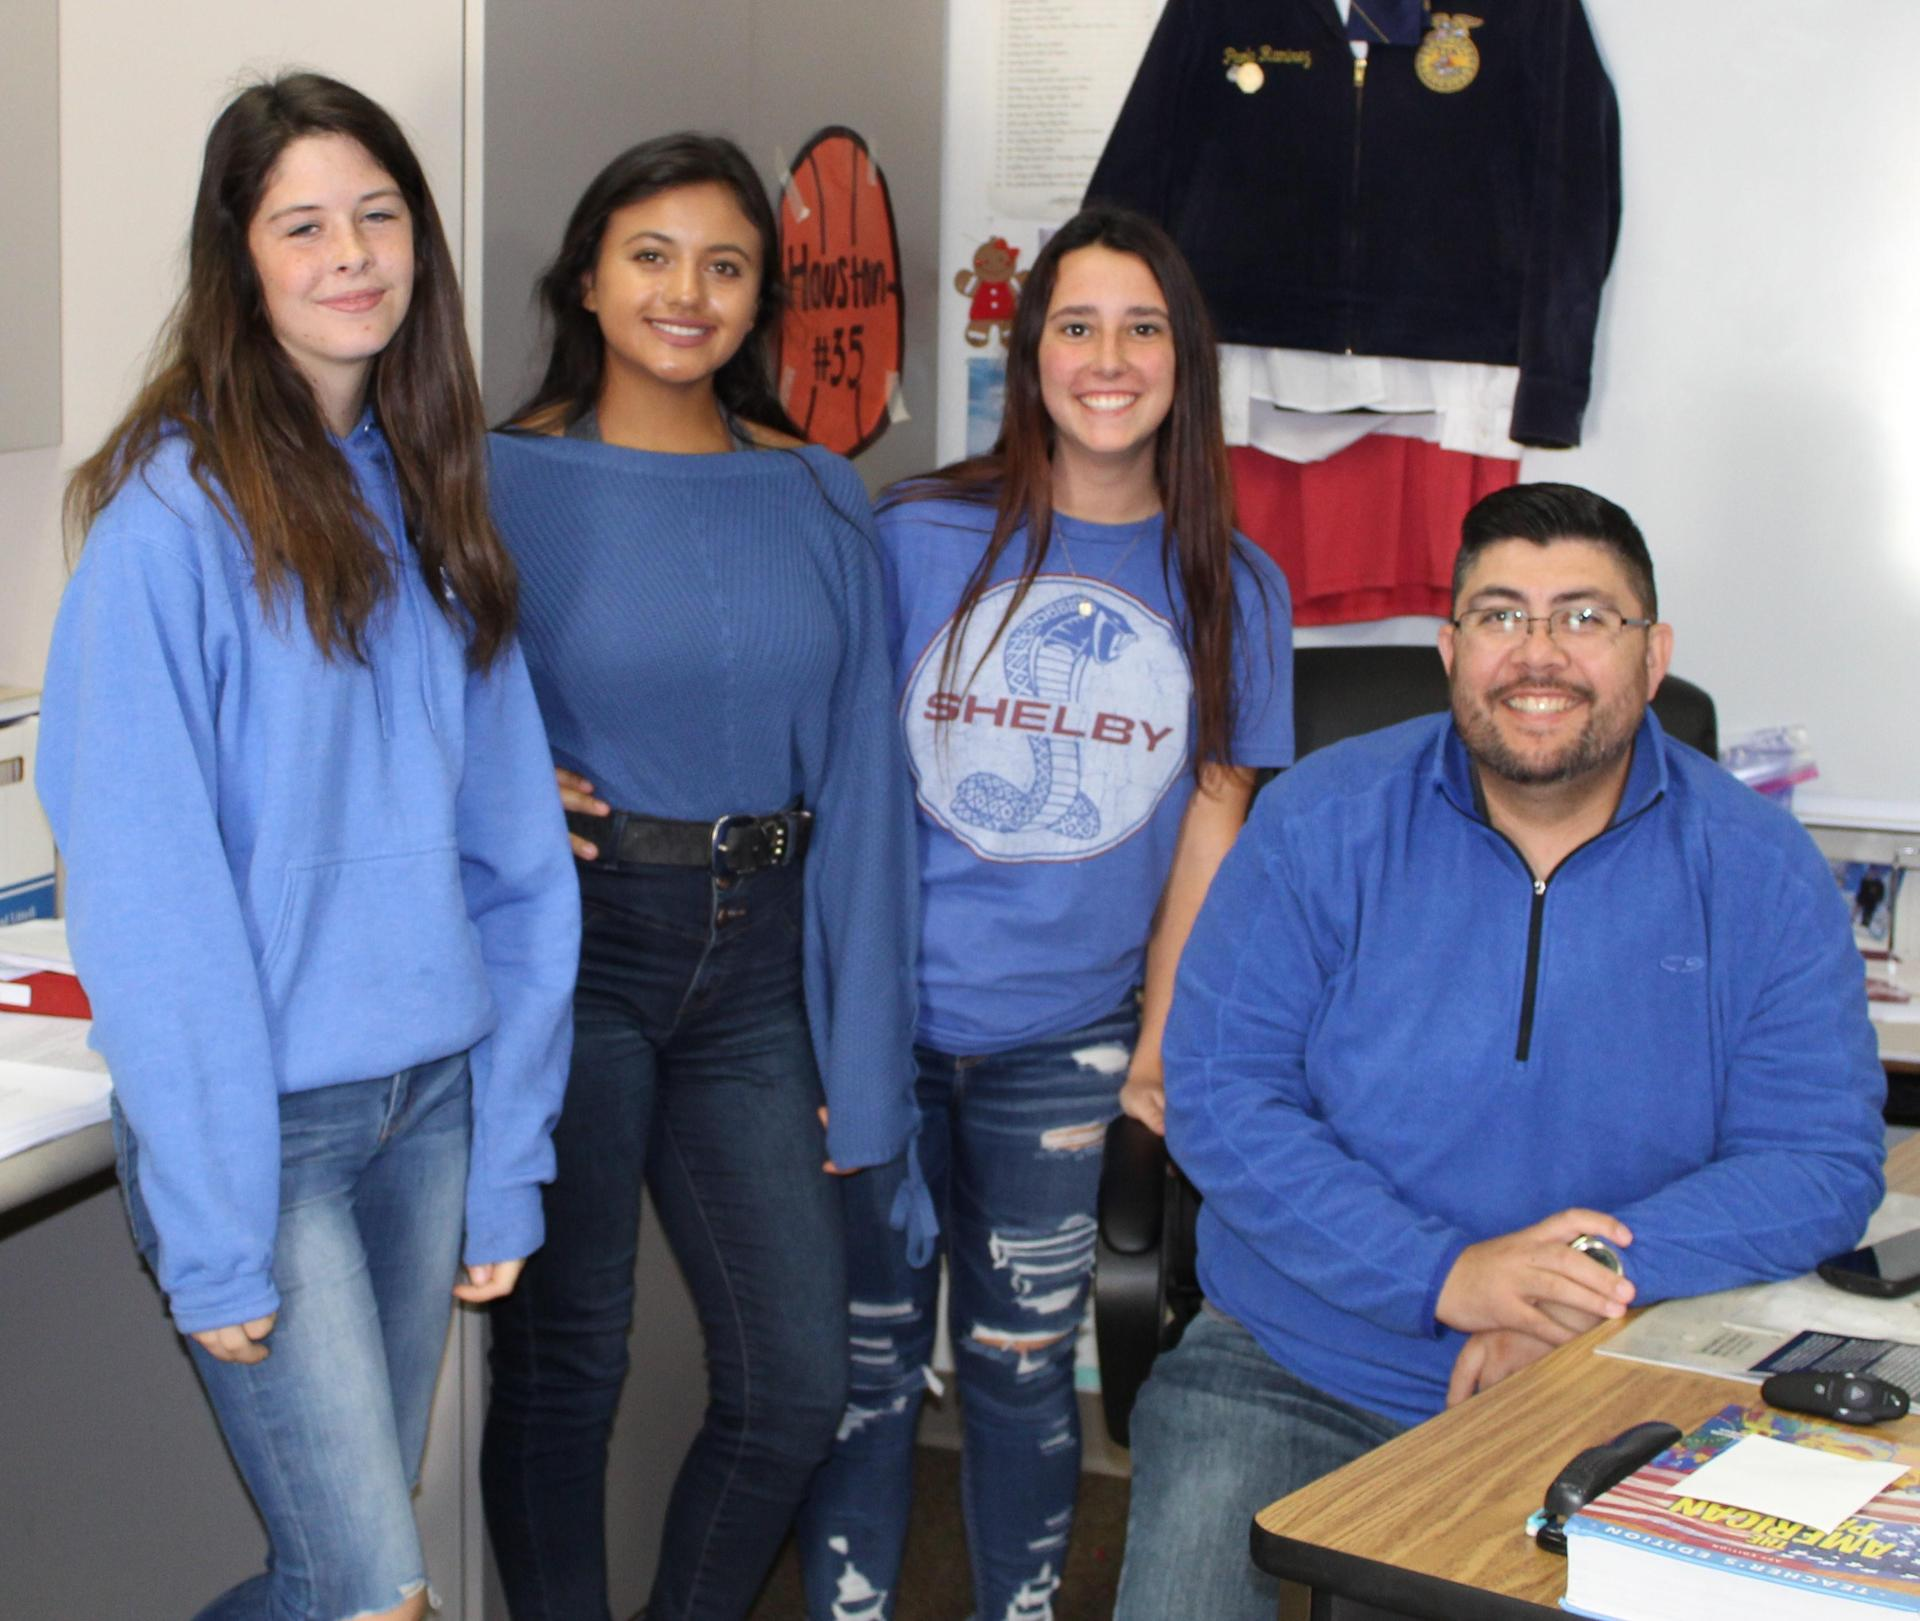 Students and staff wearing light and dark blue clothing to support awareness of Colon and Prostate Cancer.